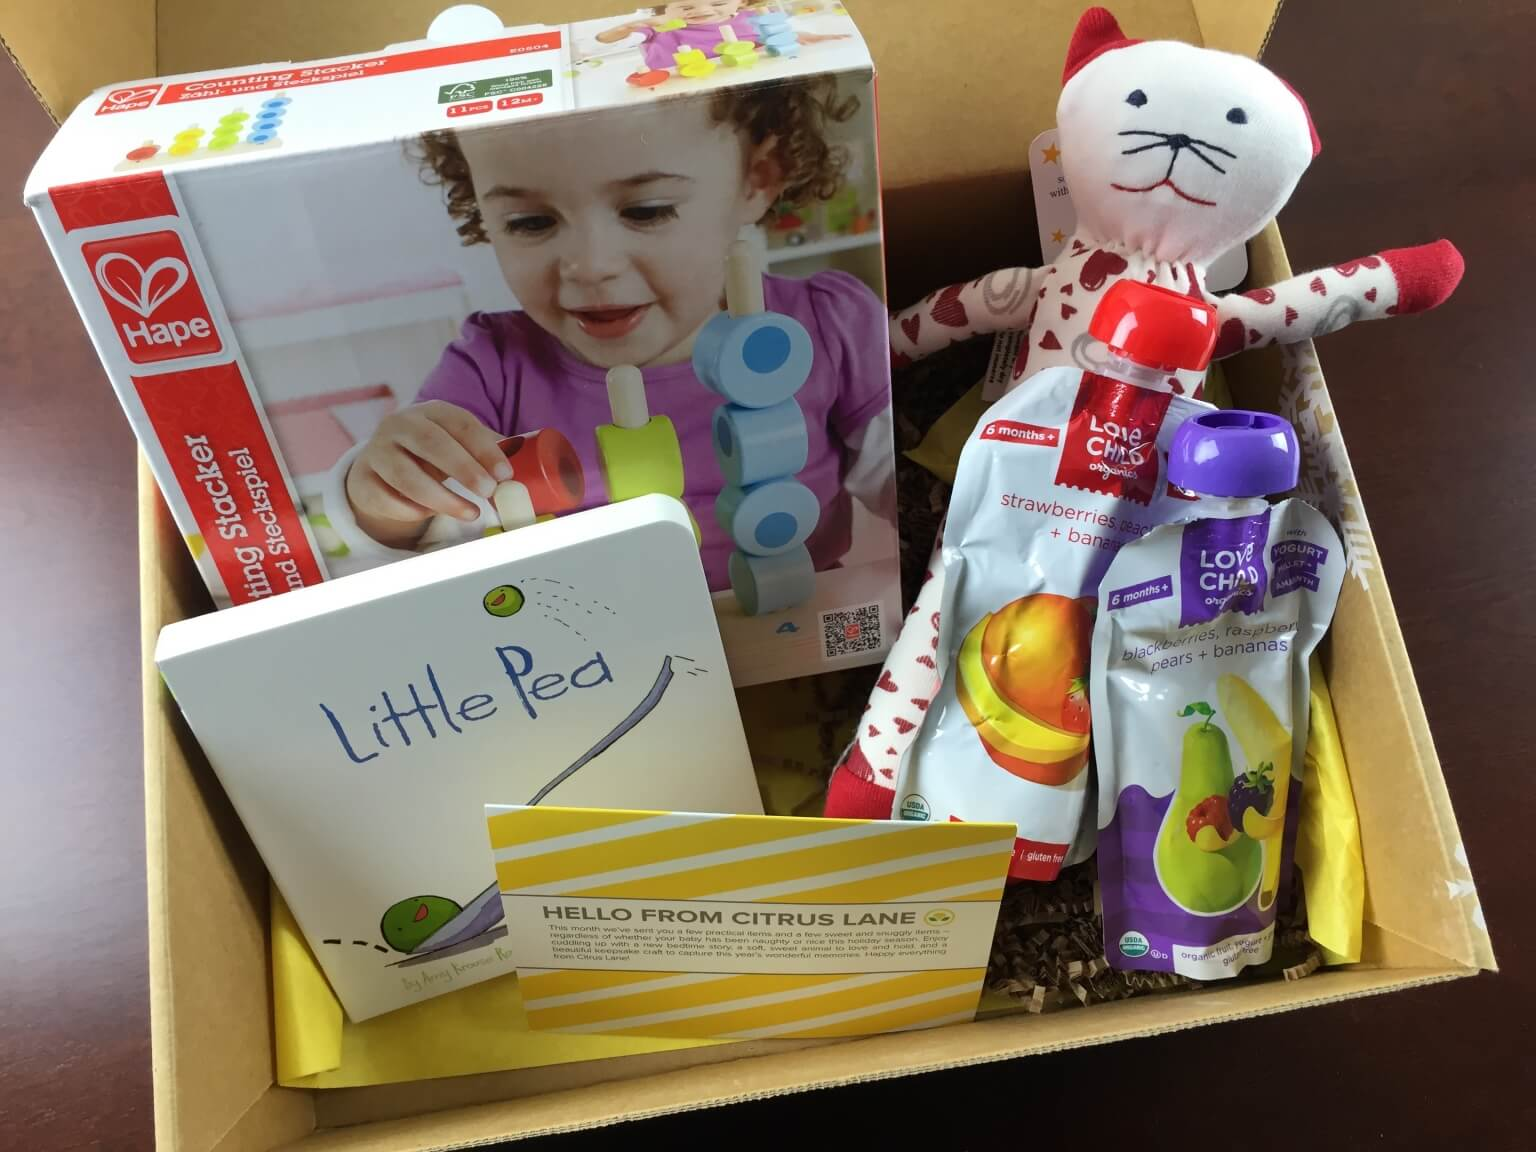 December 2014 Citrus Lane Review & Coupons – 1 year 4.5 months Girl